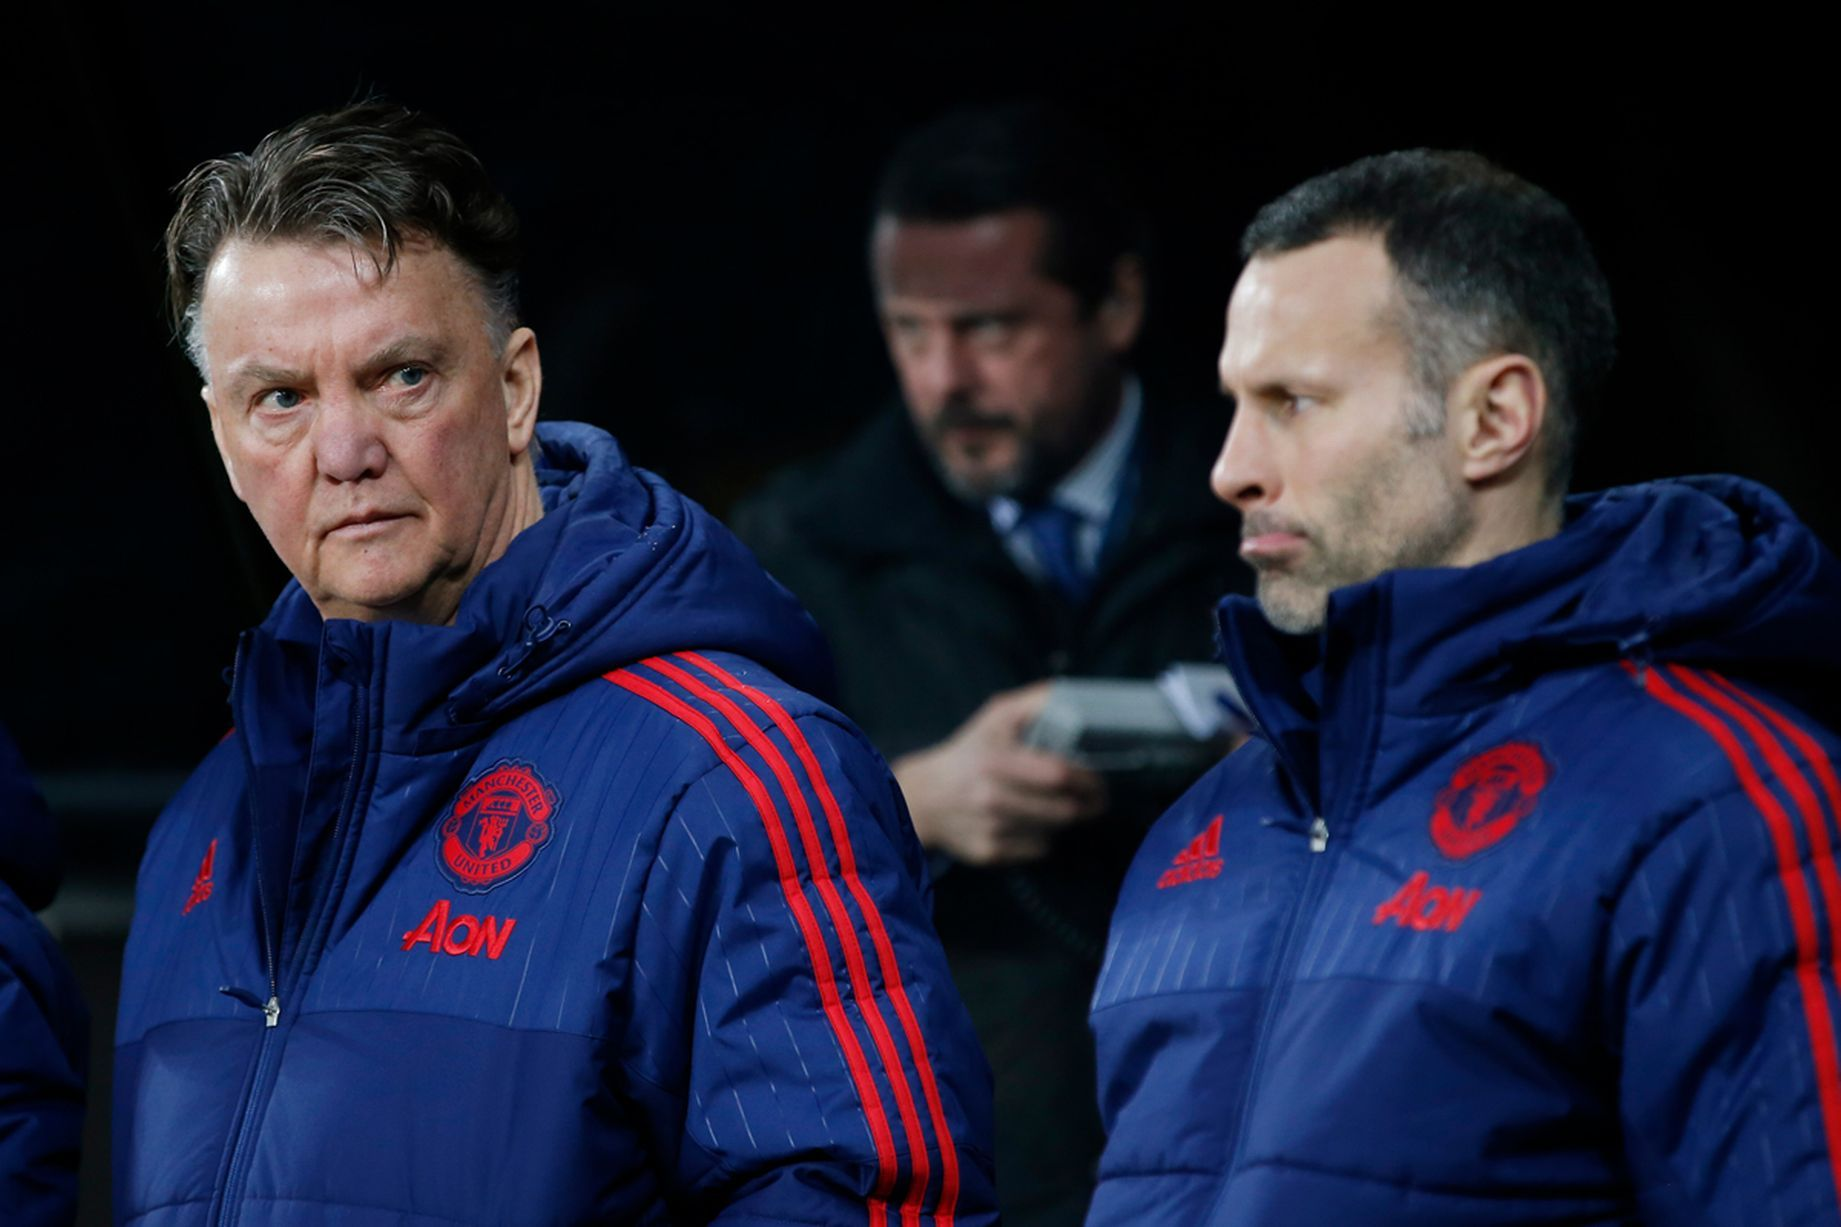 Louis Van Gaal And Assistant Manager Ryan Giggs Before The Match Winter Jackets Rain Jacket Canada Goose Jackets